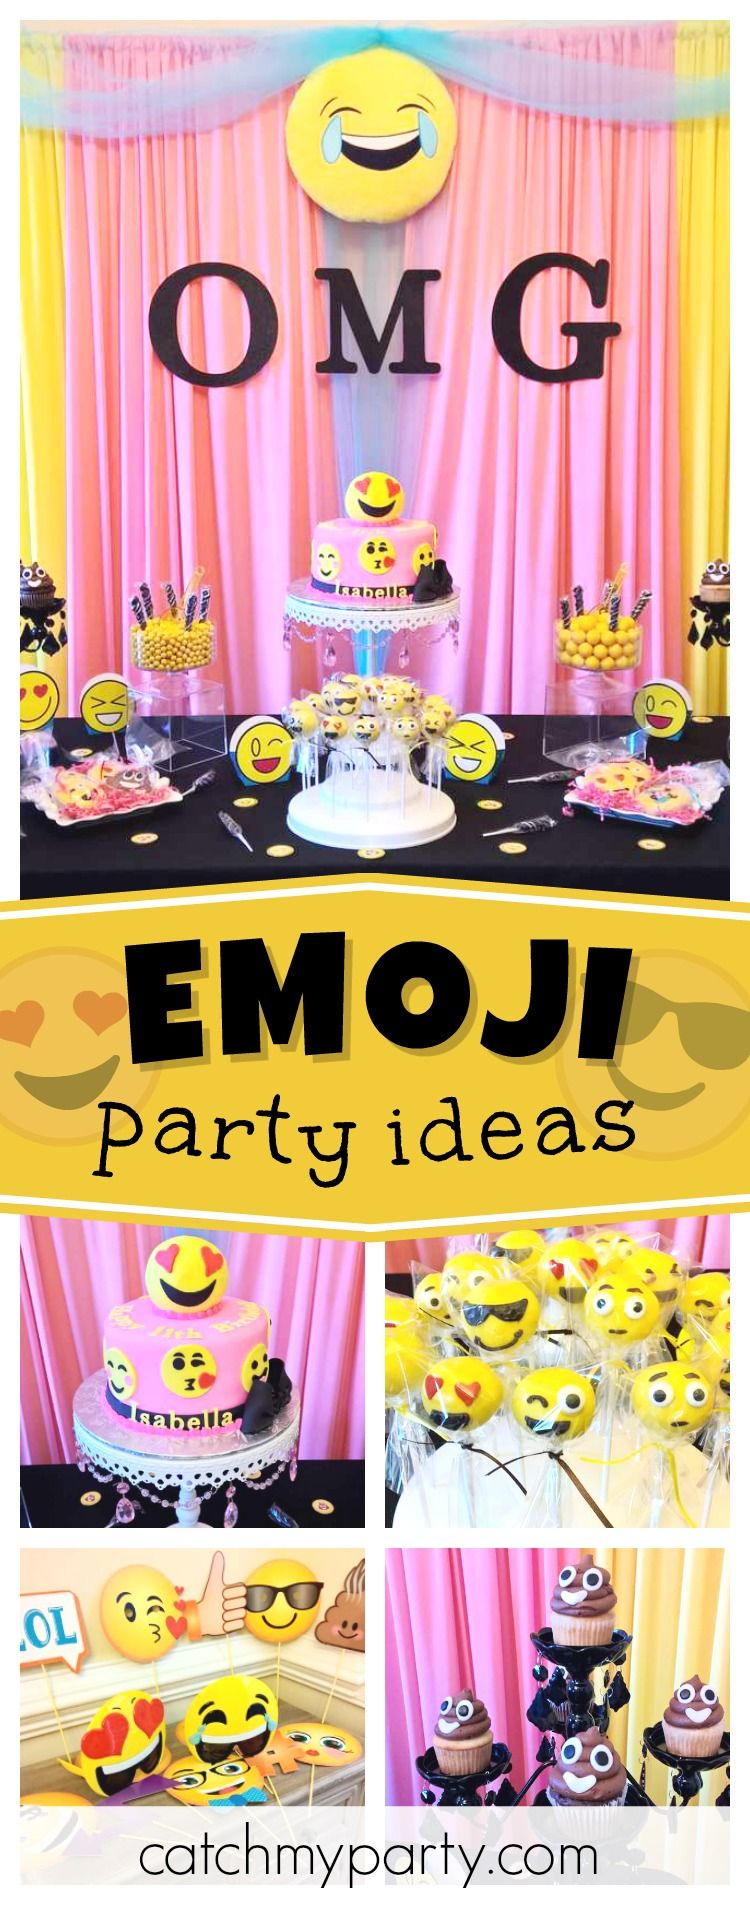 Check Out This Awesome Pre Teen Emoji Birthday Party Love The Cookies See More Ideas And Share Yours At CatchMyParty